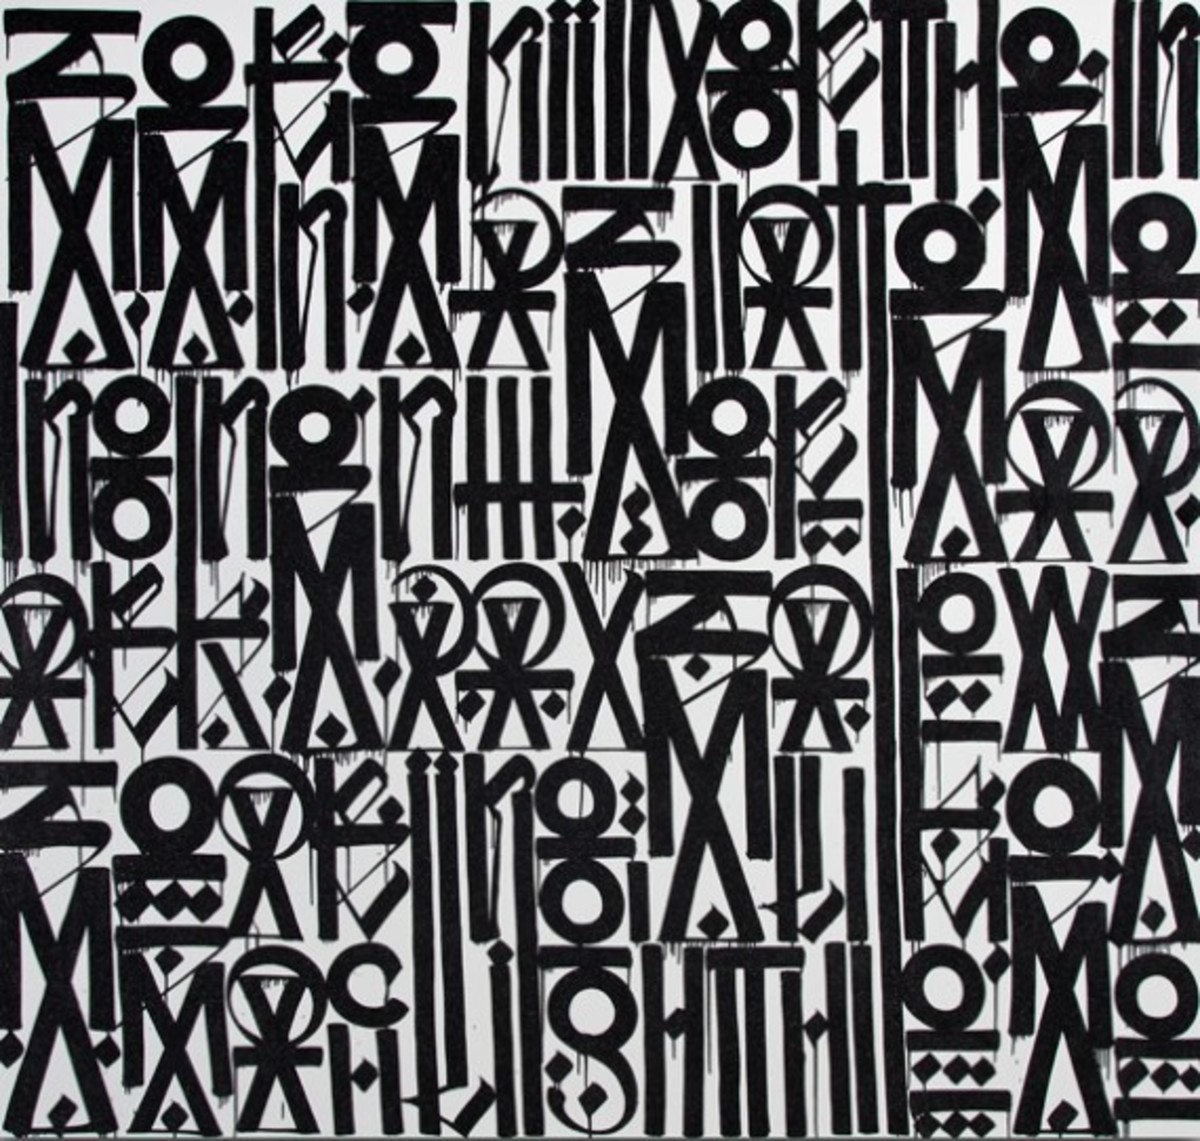 retna-new-paintings-and-works-on-paper-exhibition-02